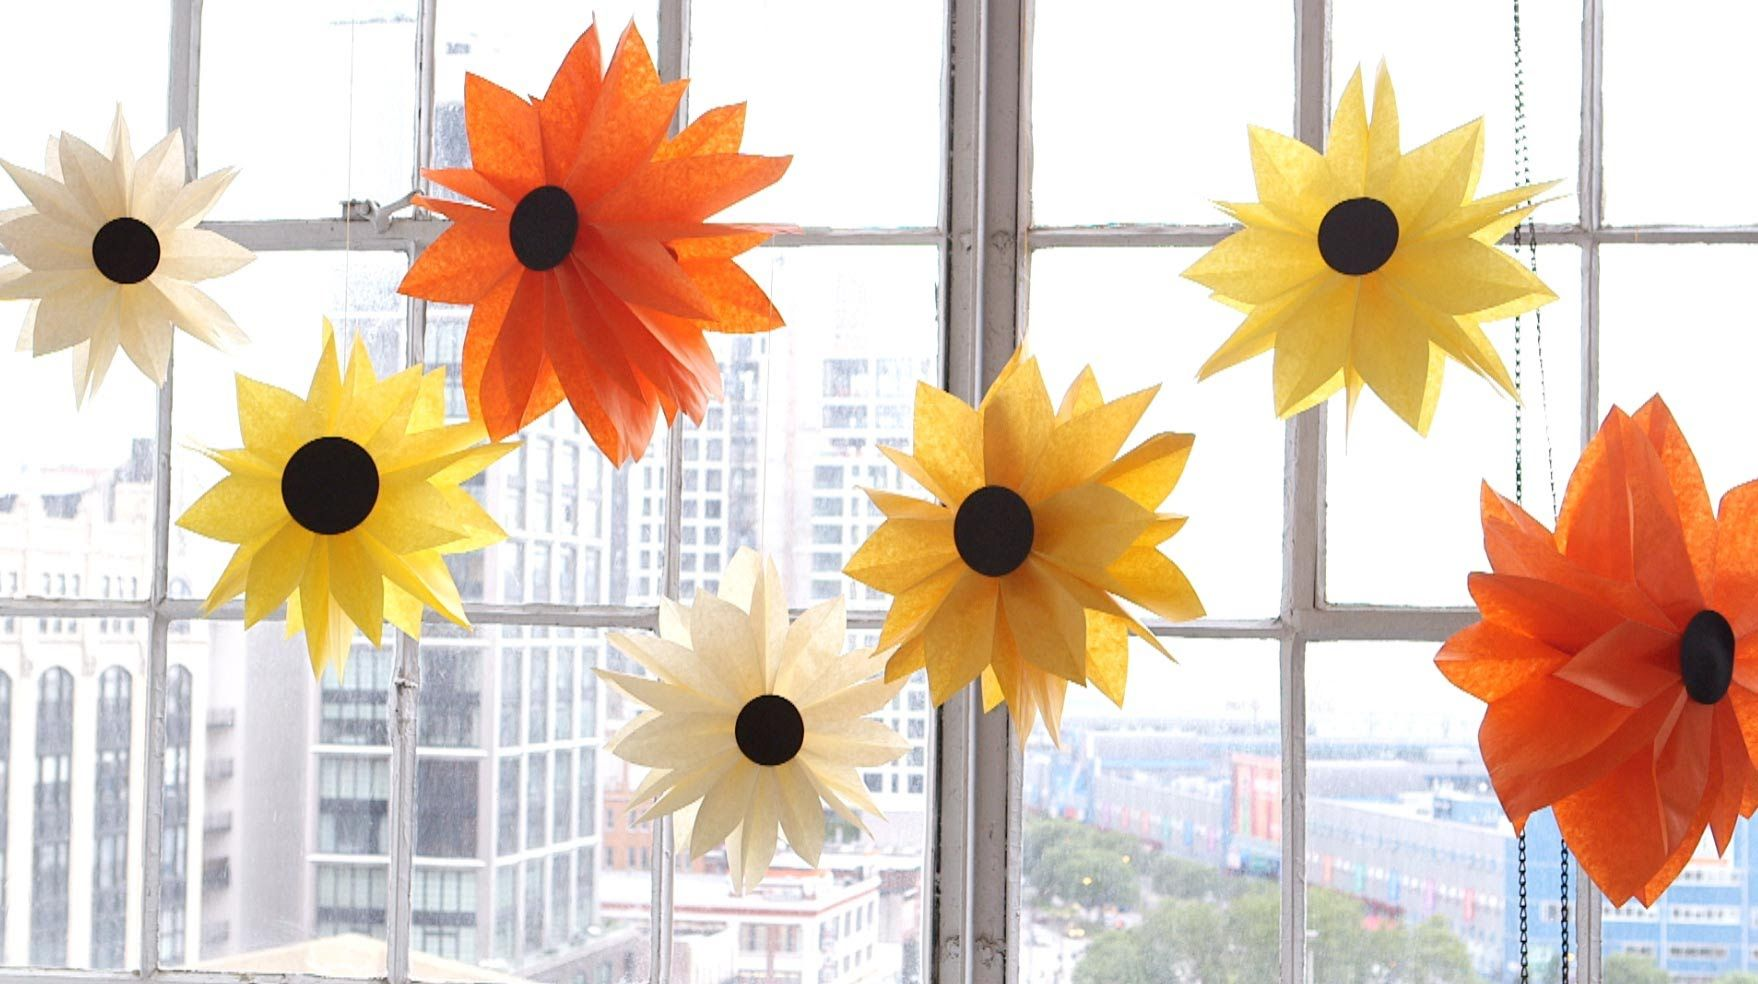 Think Making Those Adorable Hanging Paper Flowers Is Above Your